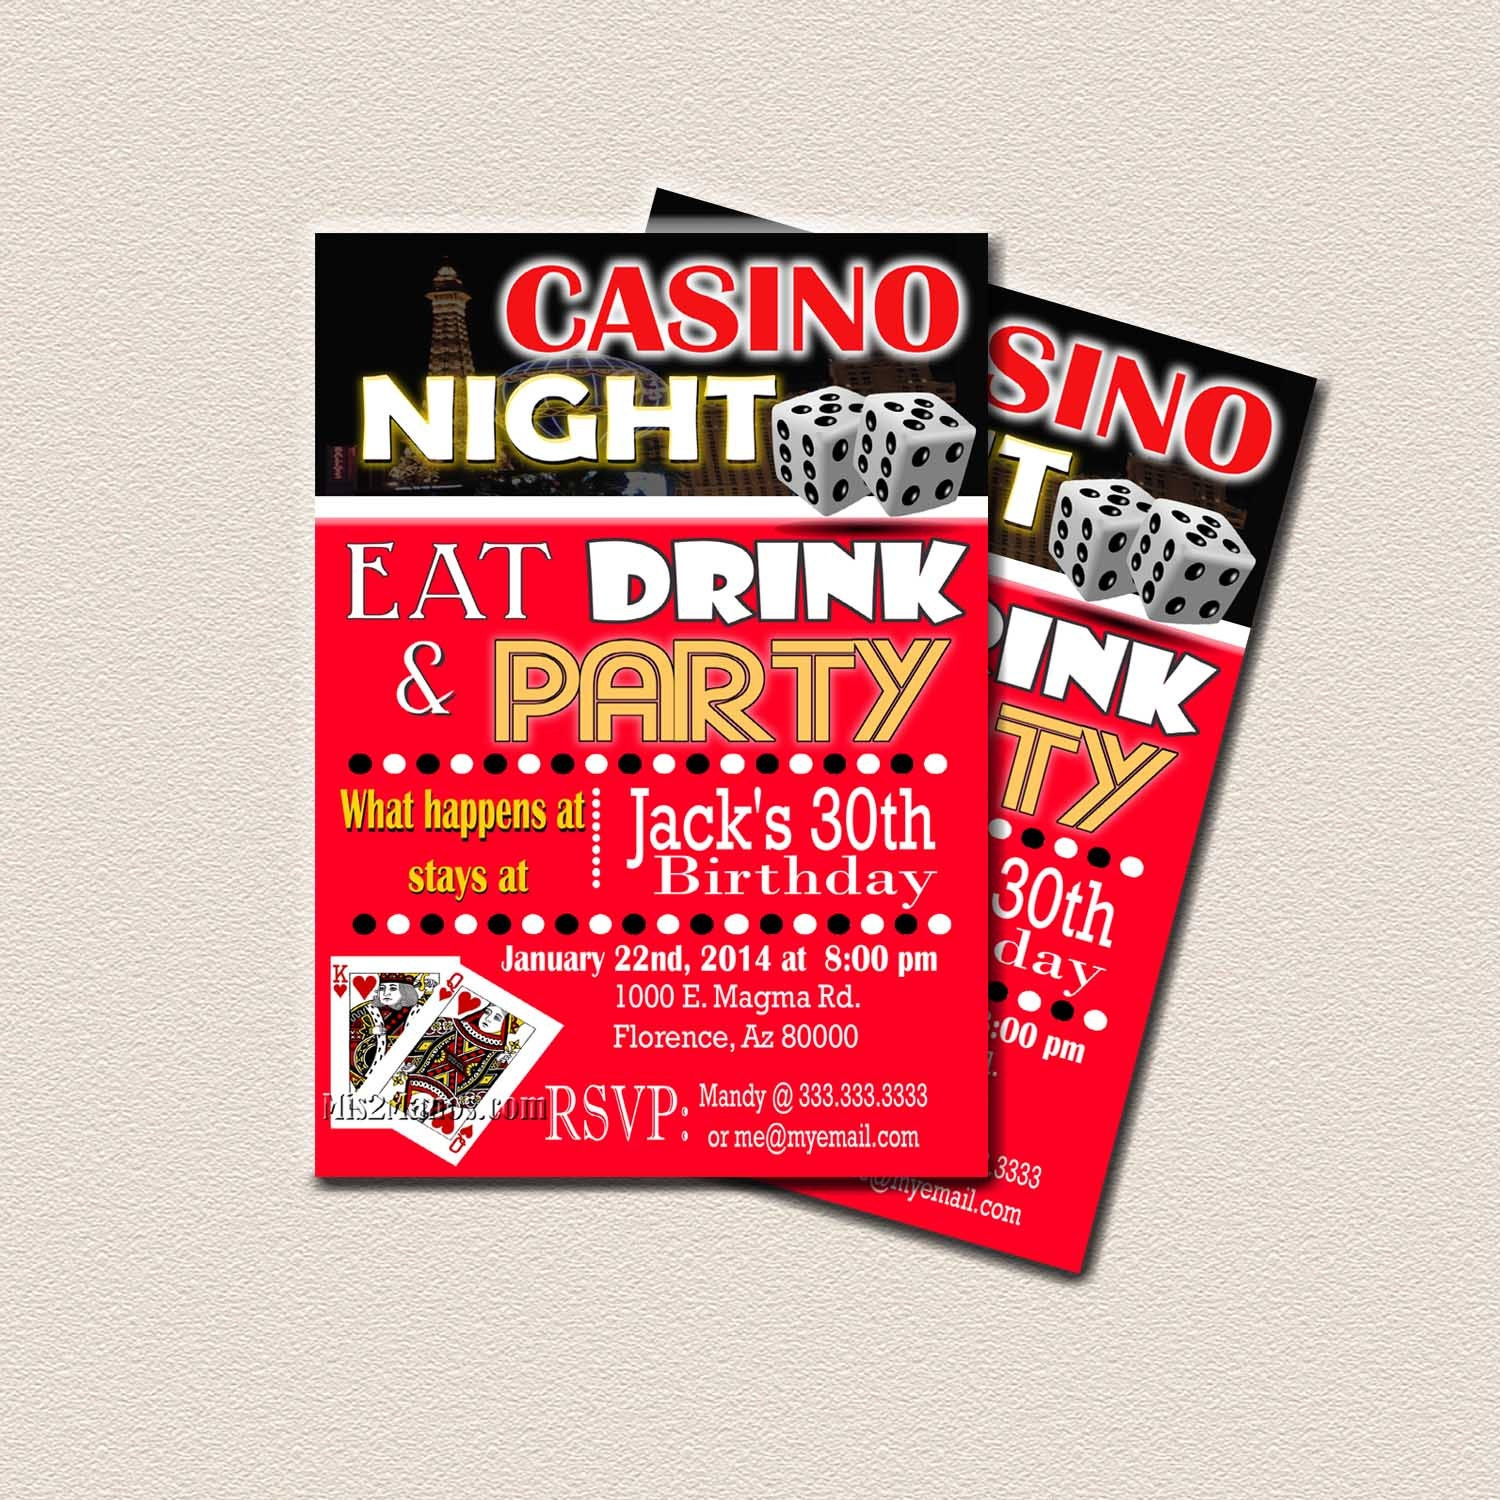 Casino Party Invitations gangcraft